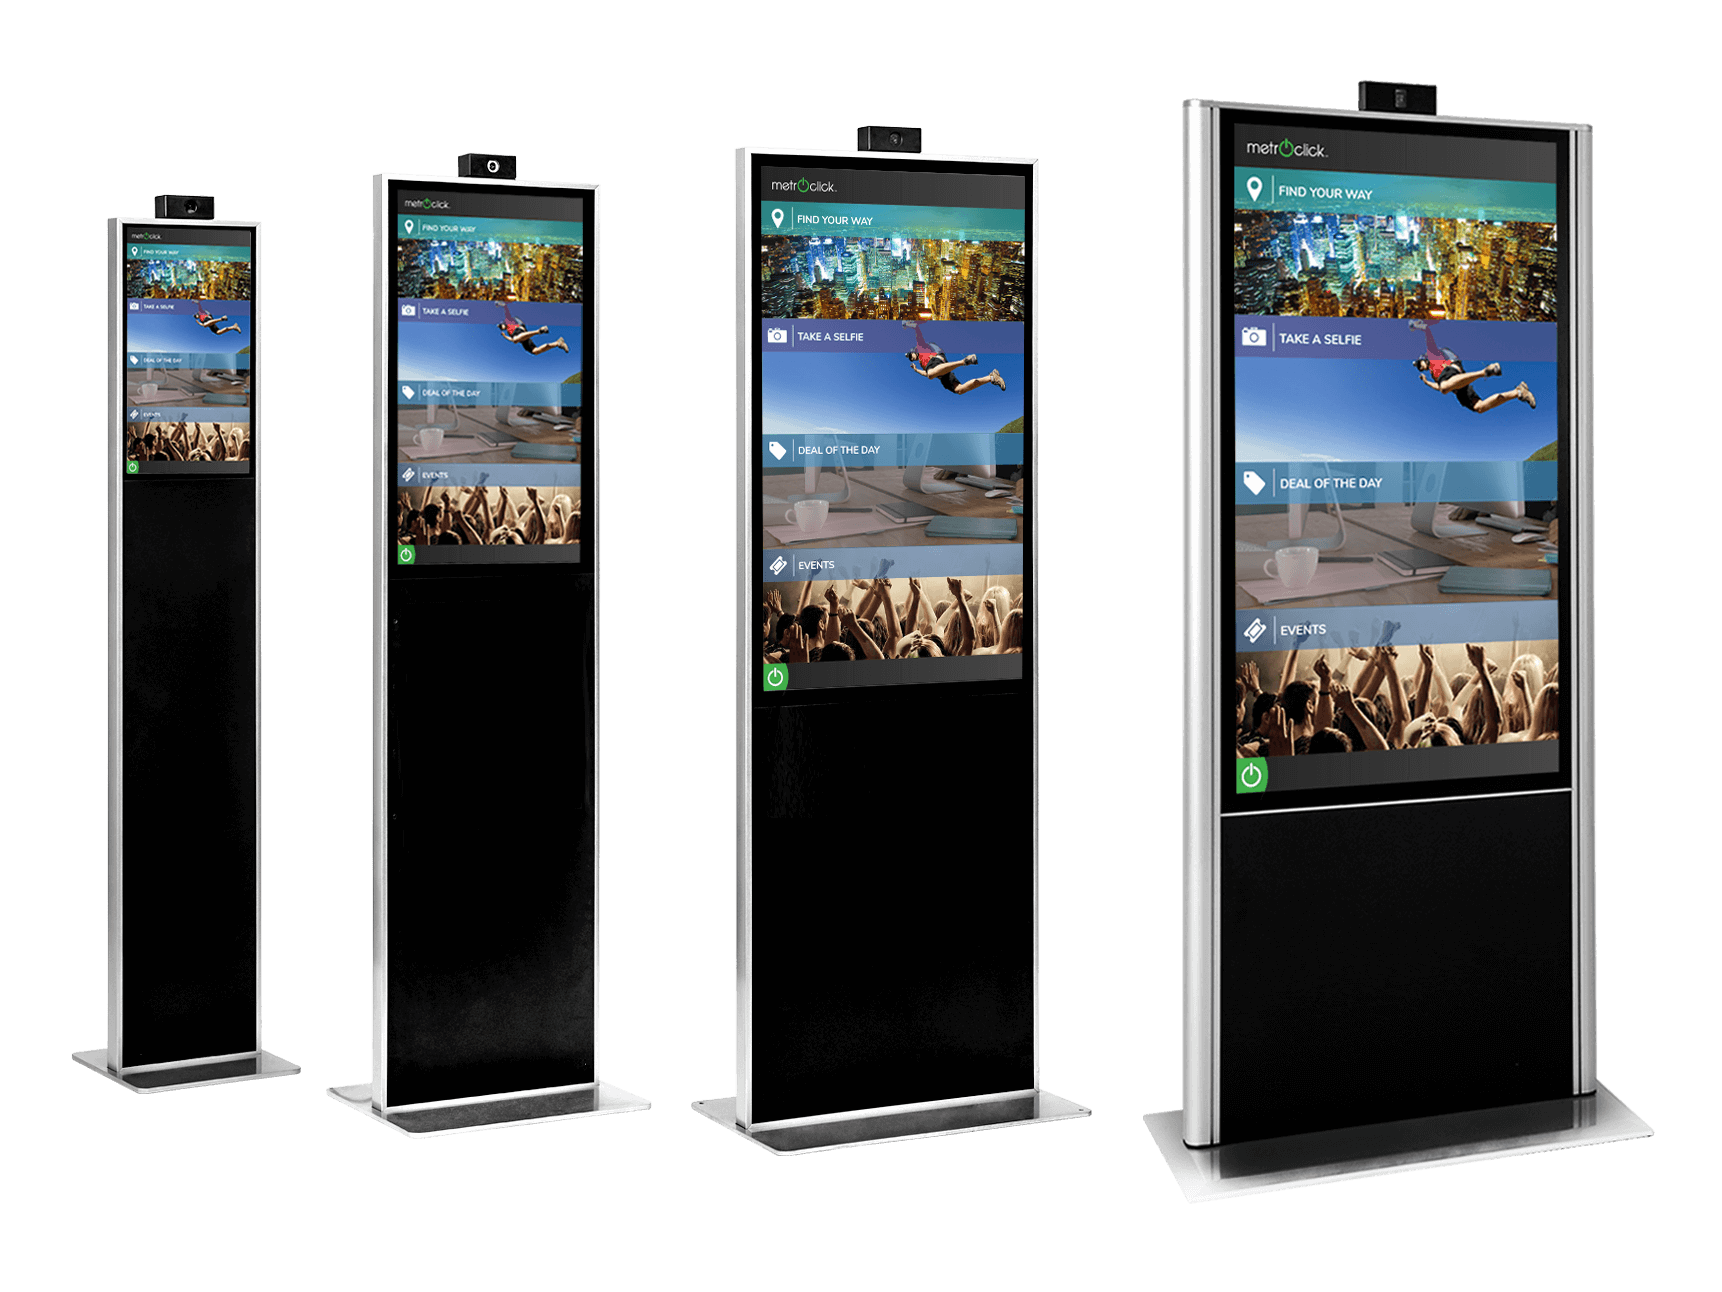 How Your Business Might Use a MetroClick Kiosk With a Double Screen